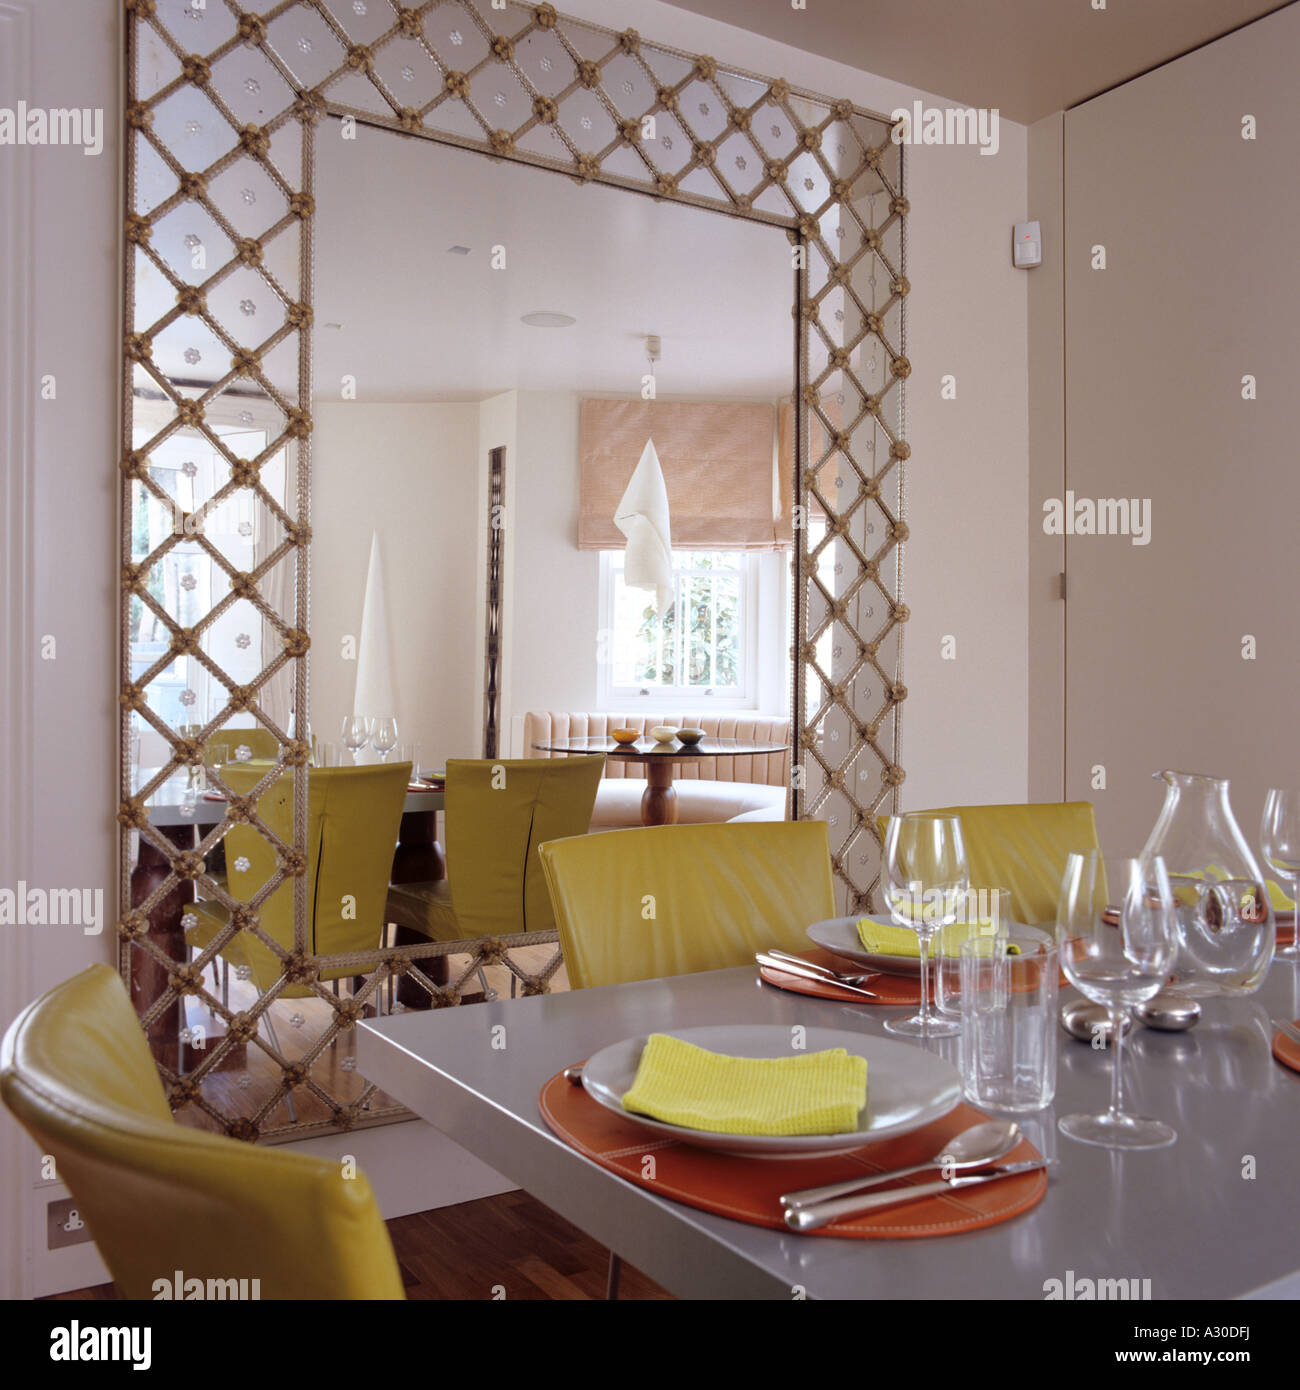 Oversized Mirror With Fretwork In Dining Room With Table And Yellow Stock Photo Alamy